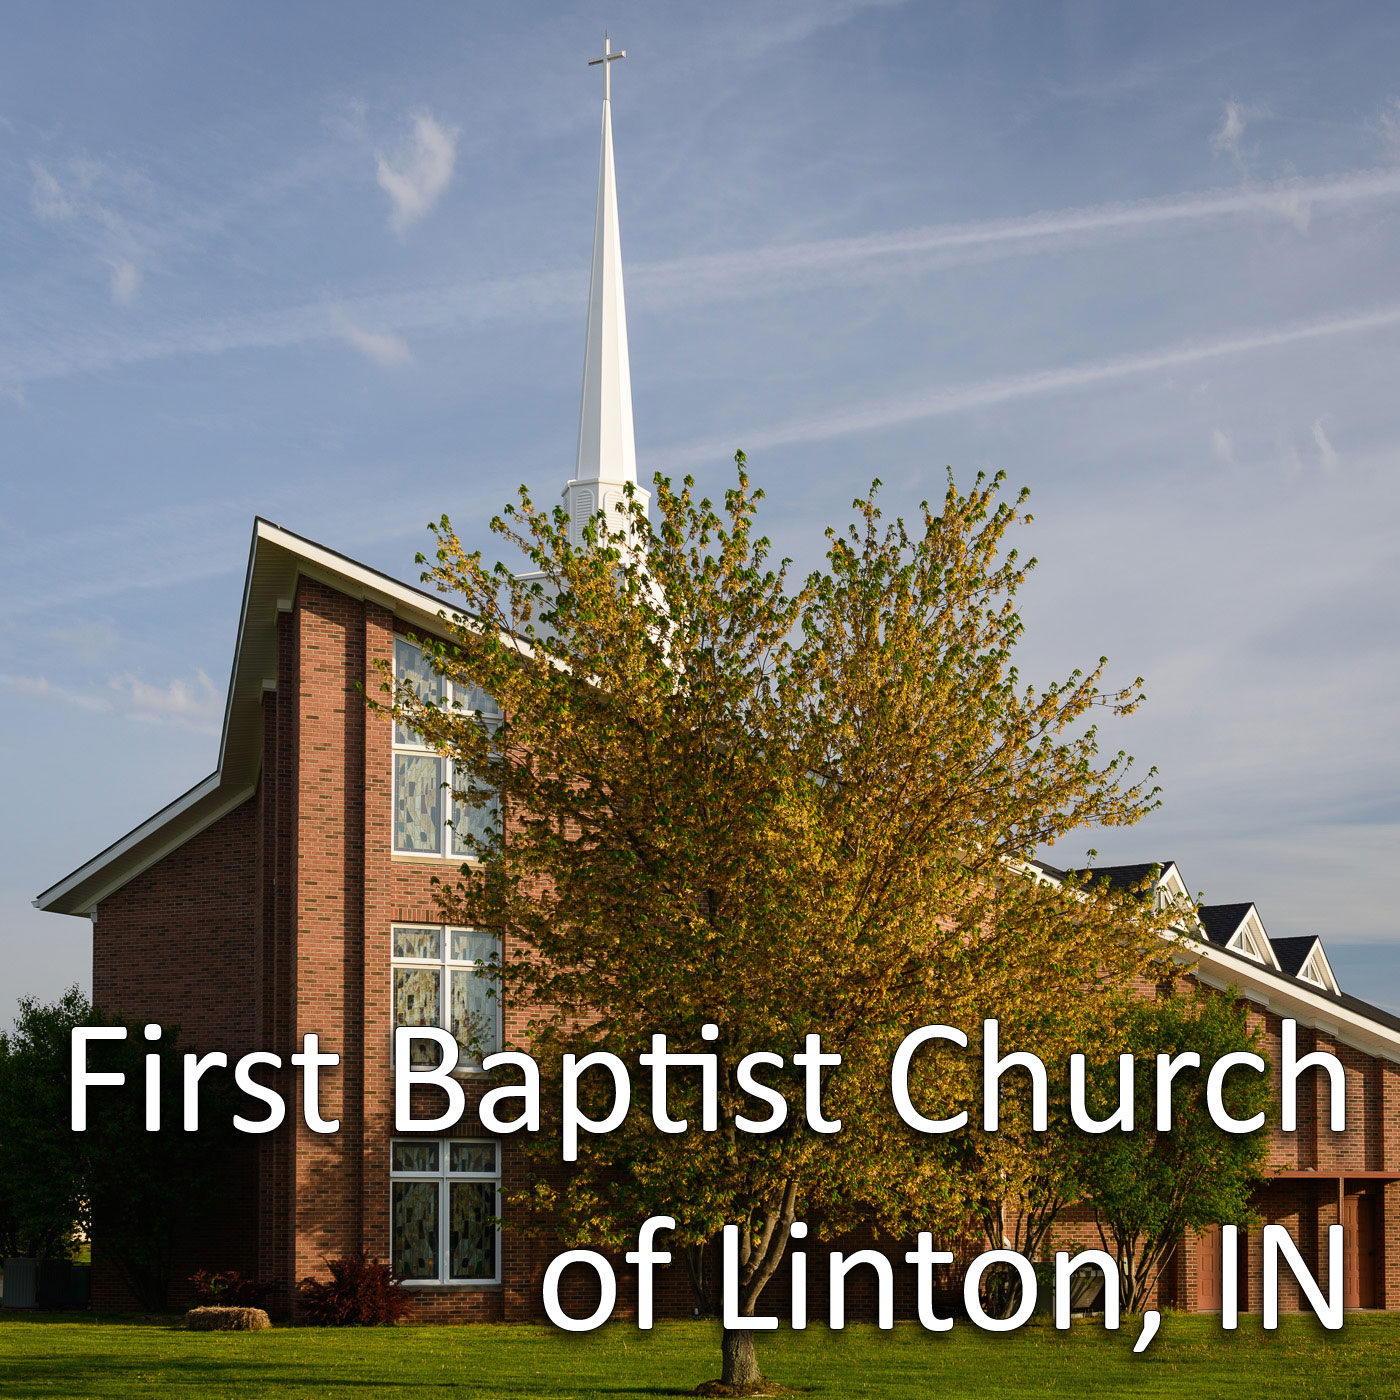 First Baptist Church of Linton, IN